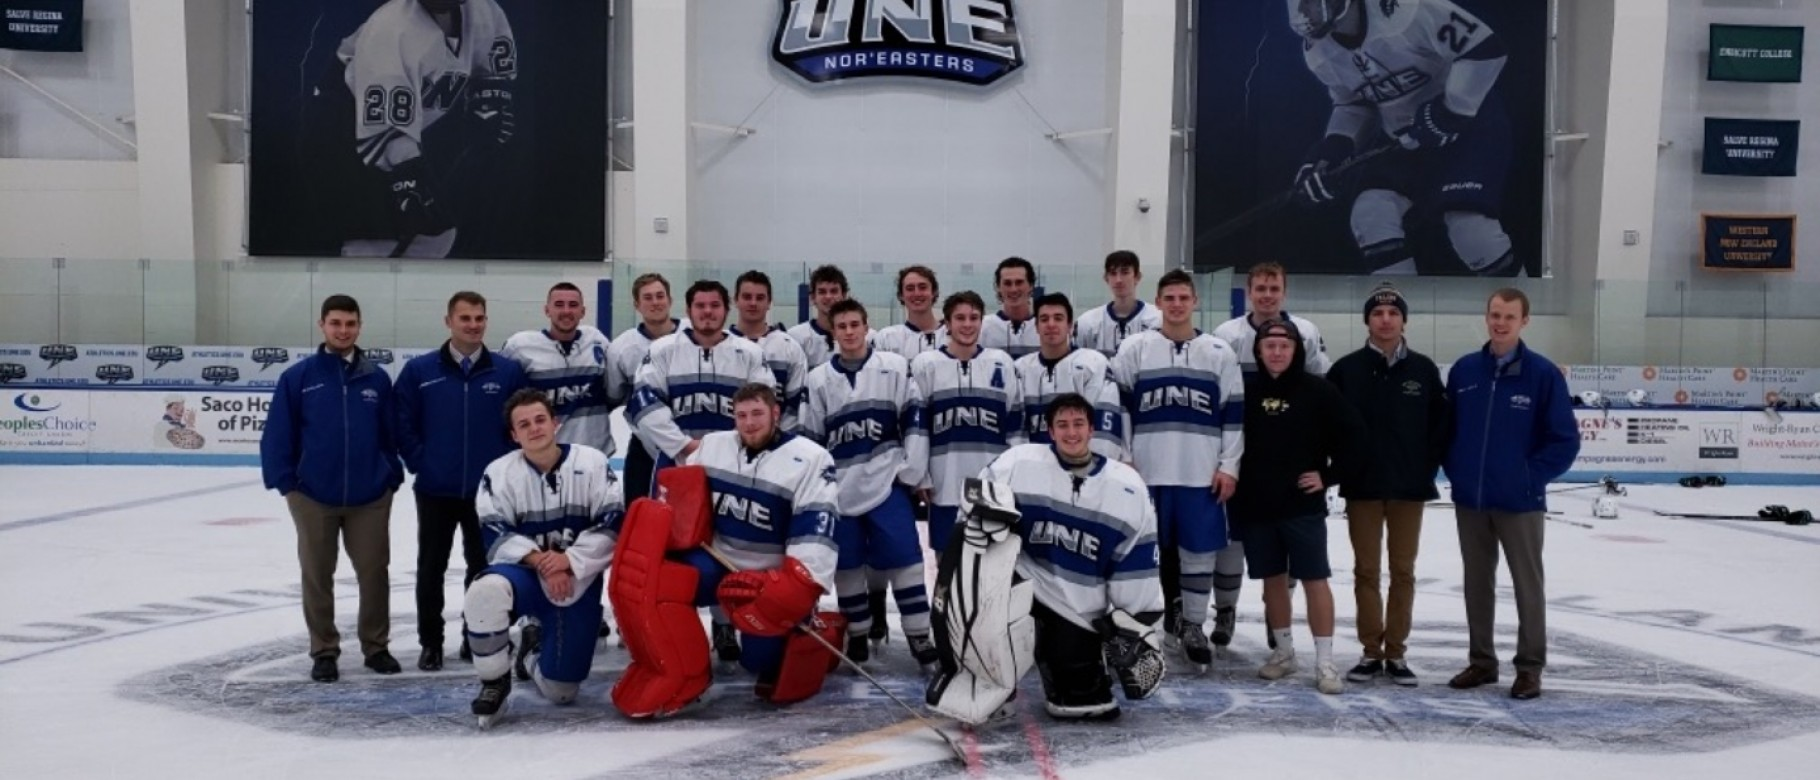 Members of the men's club hockey team raised money to donate to health care workers